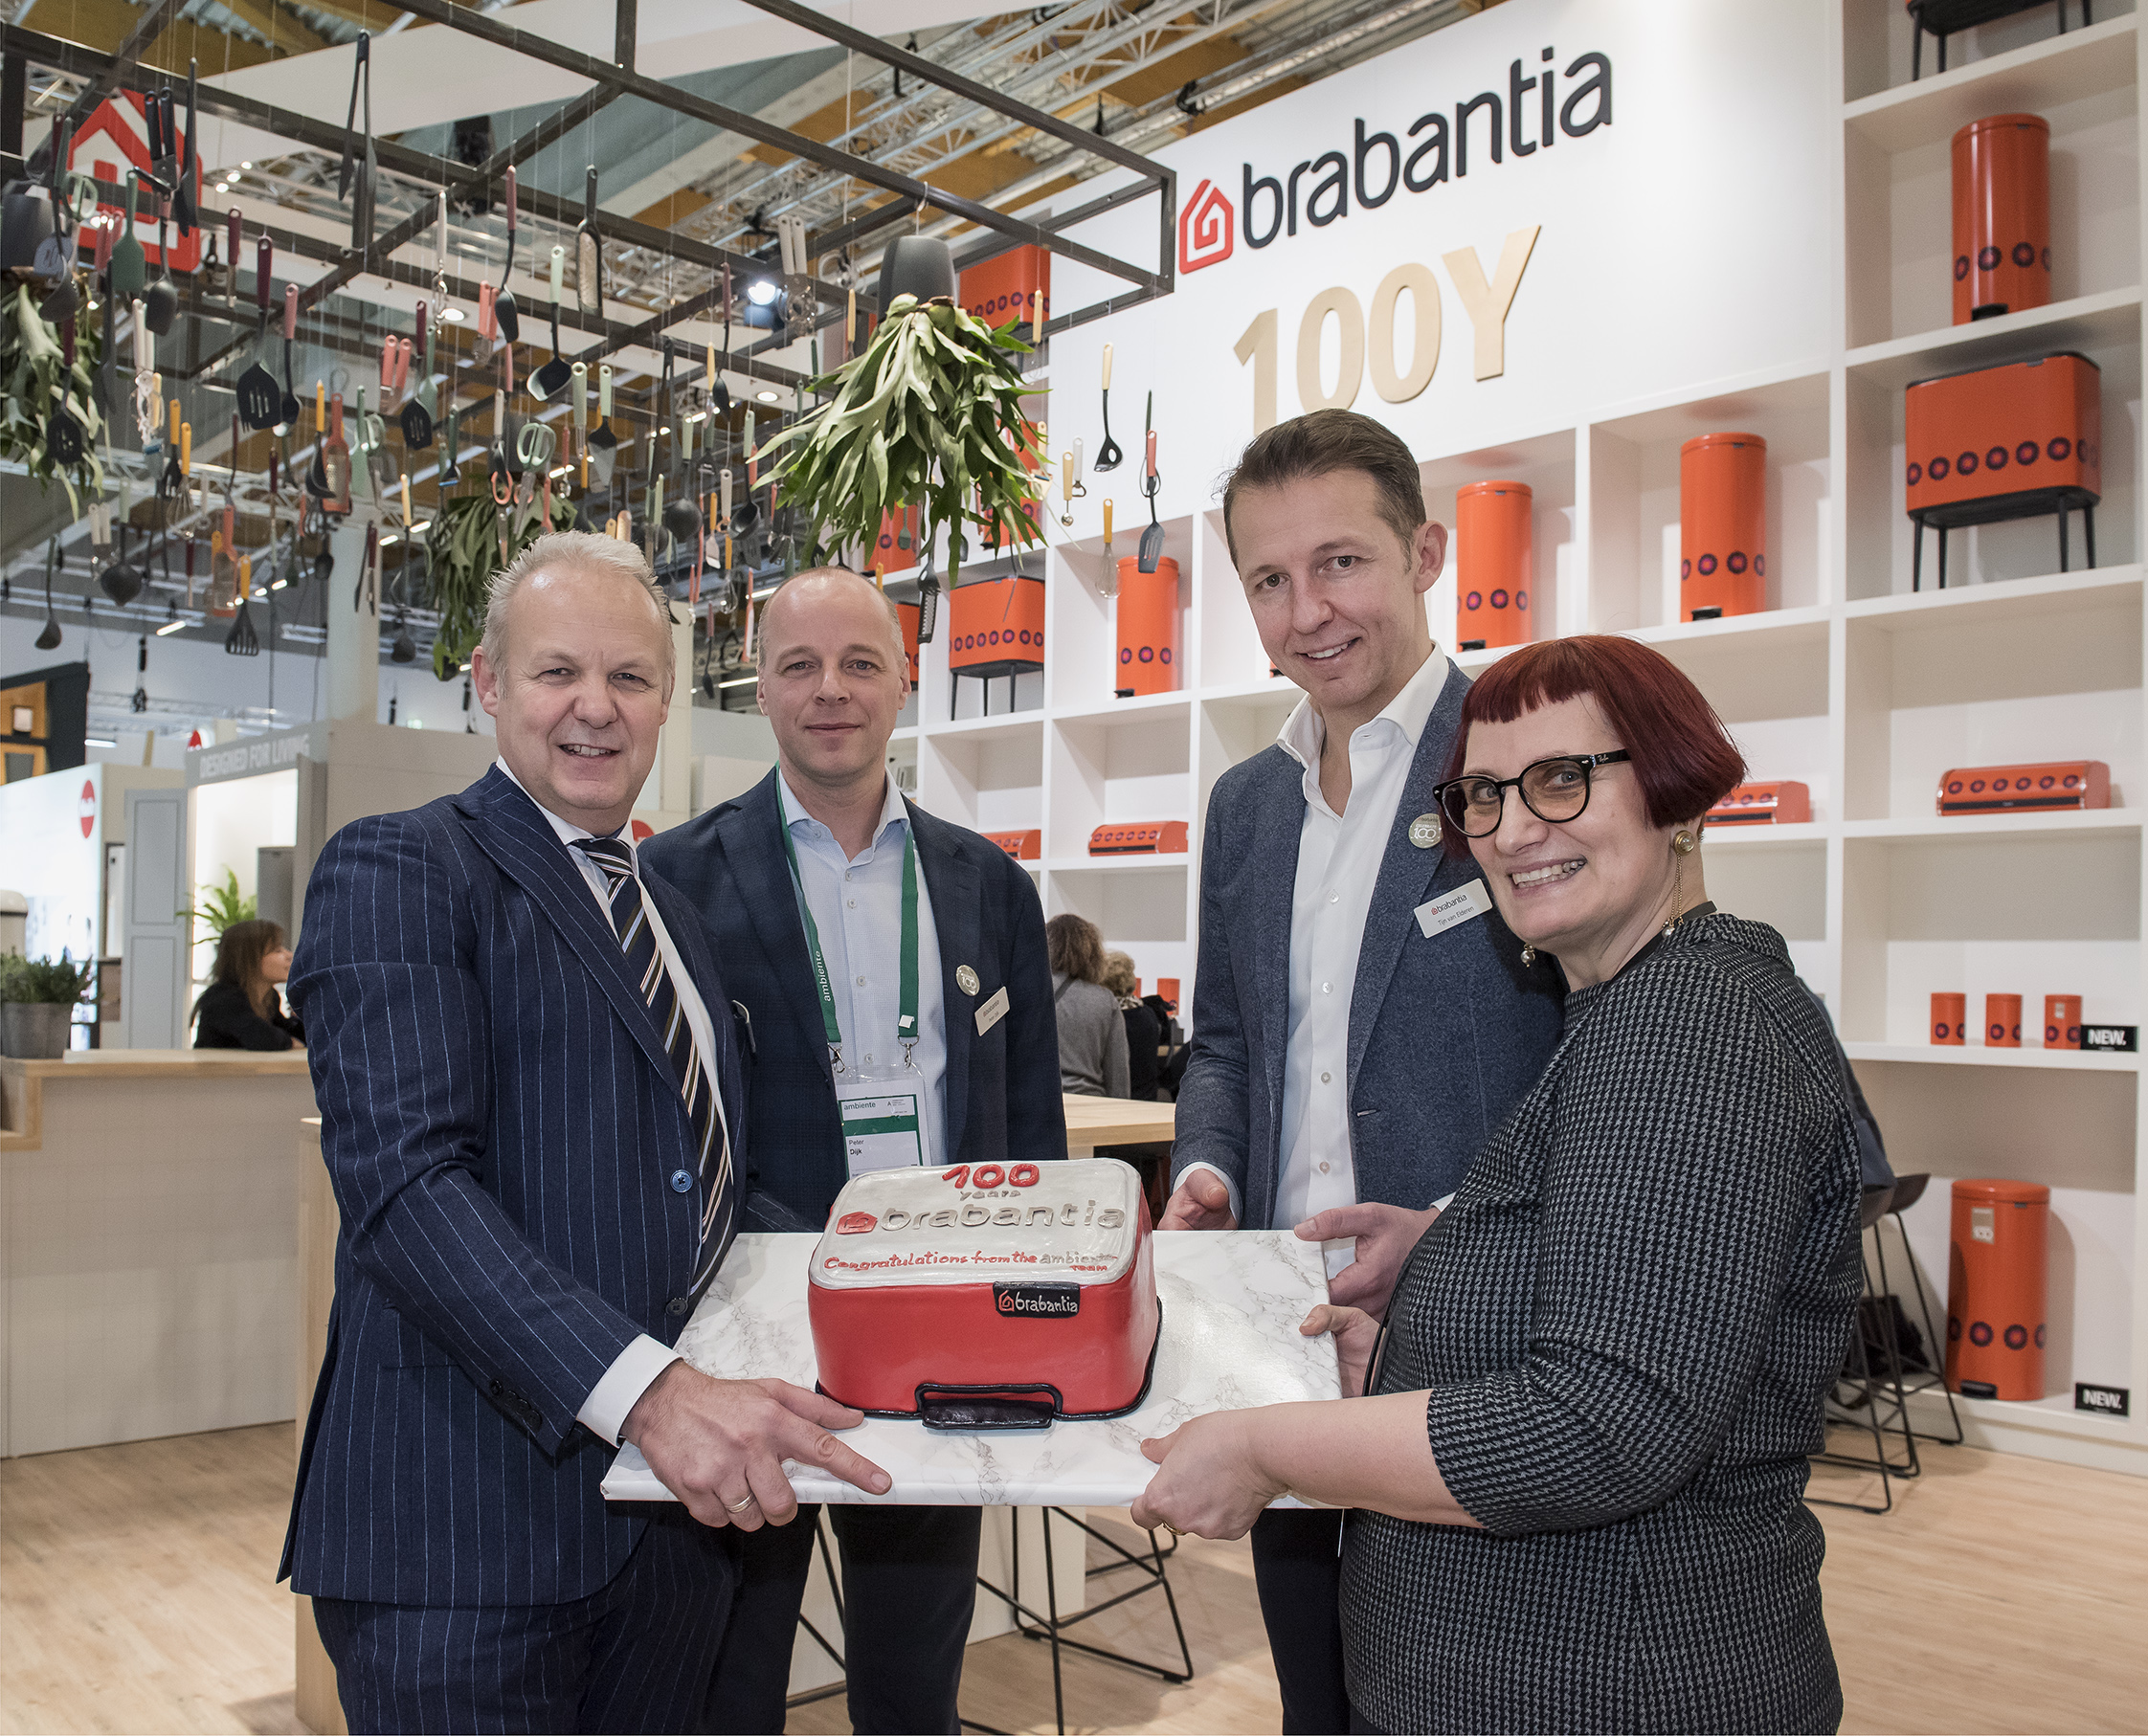 Brabantia celebrating its centenary.